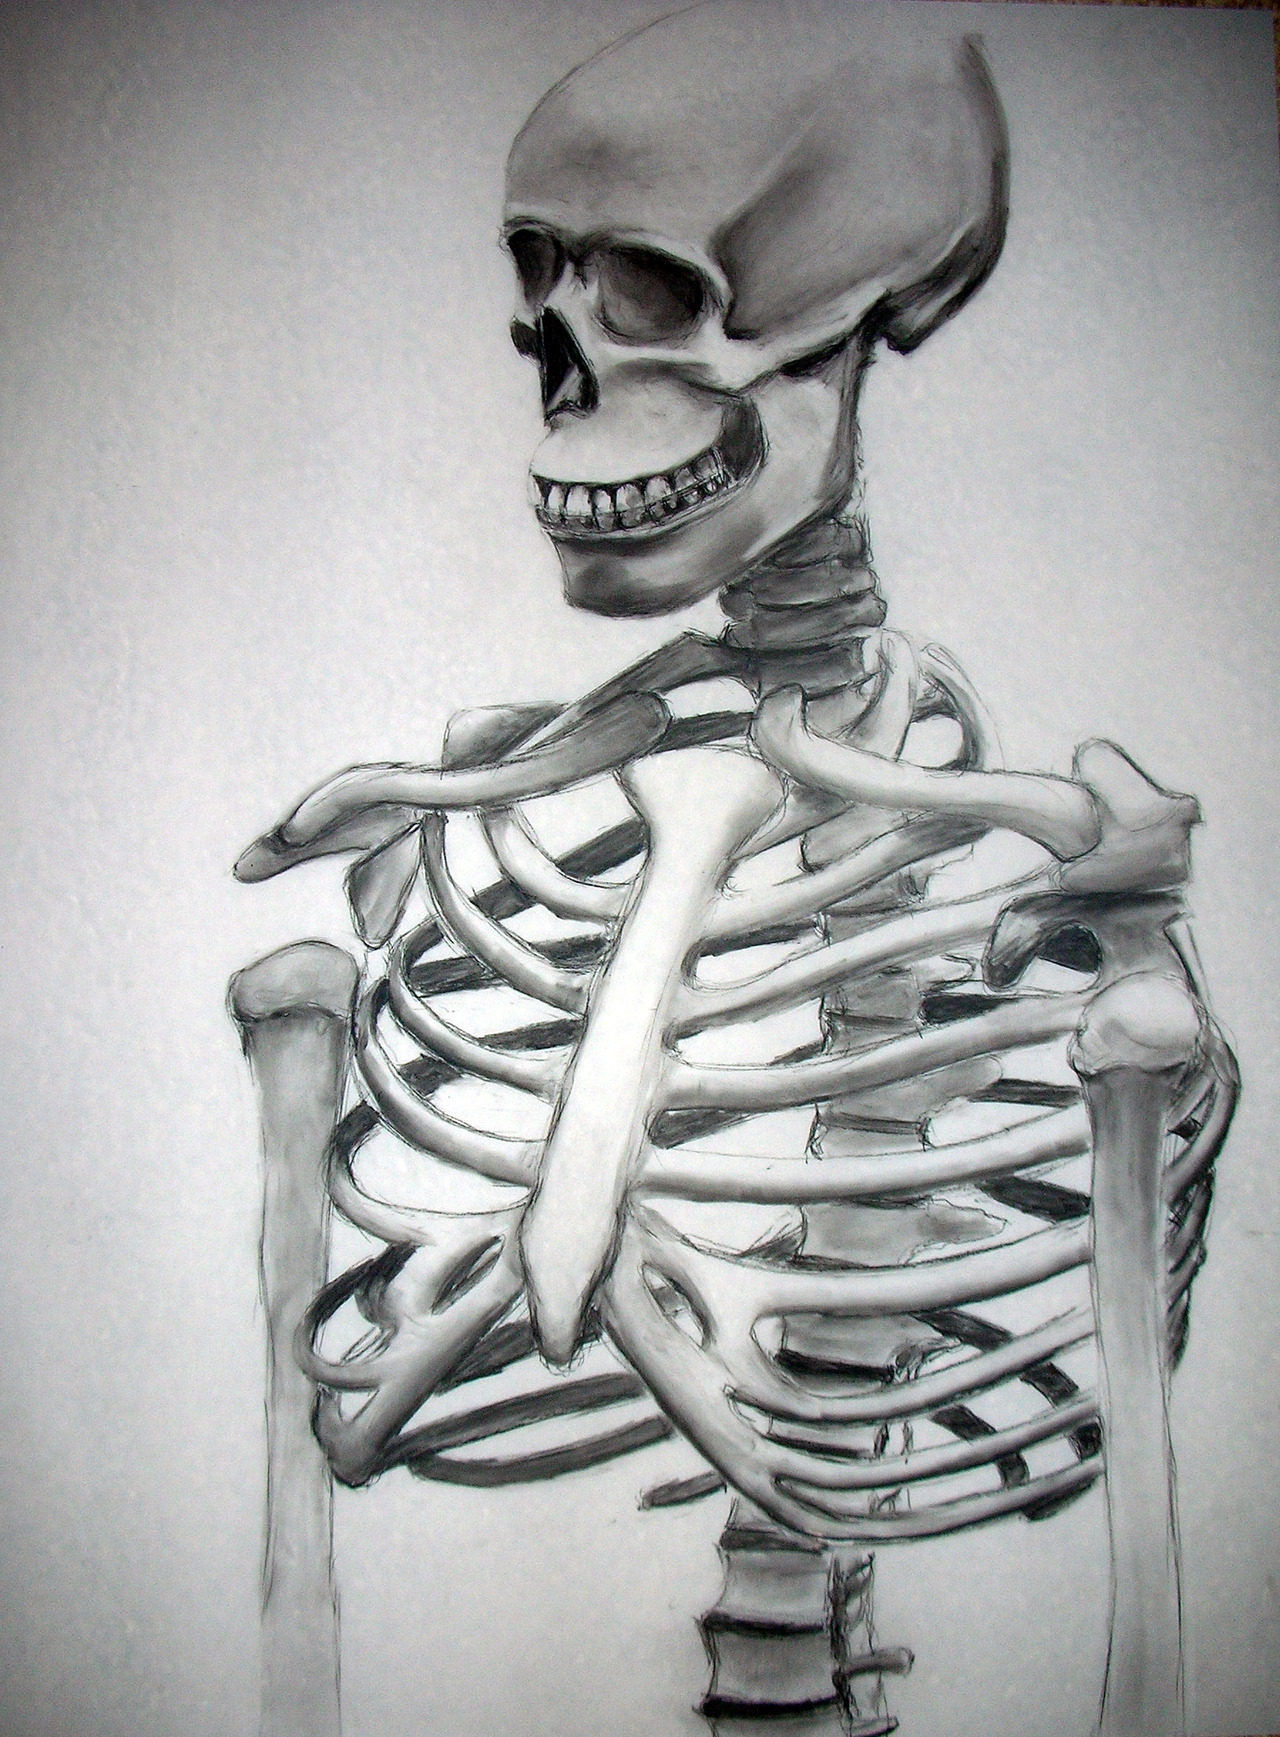 Dug this up from a while ago, drew this in a drawing class from one of those lab skeletons. Drawn on vellum, a semi-transparent plastic like paper, using charcoal. Really fun to draw, and the vellum and charcoal is an amazing combination to work with.